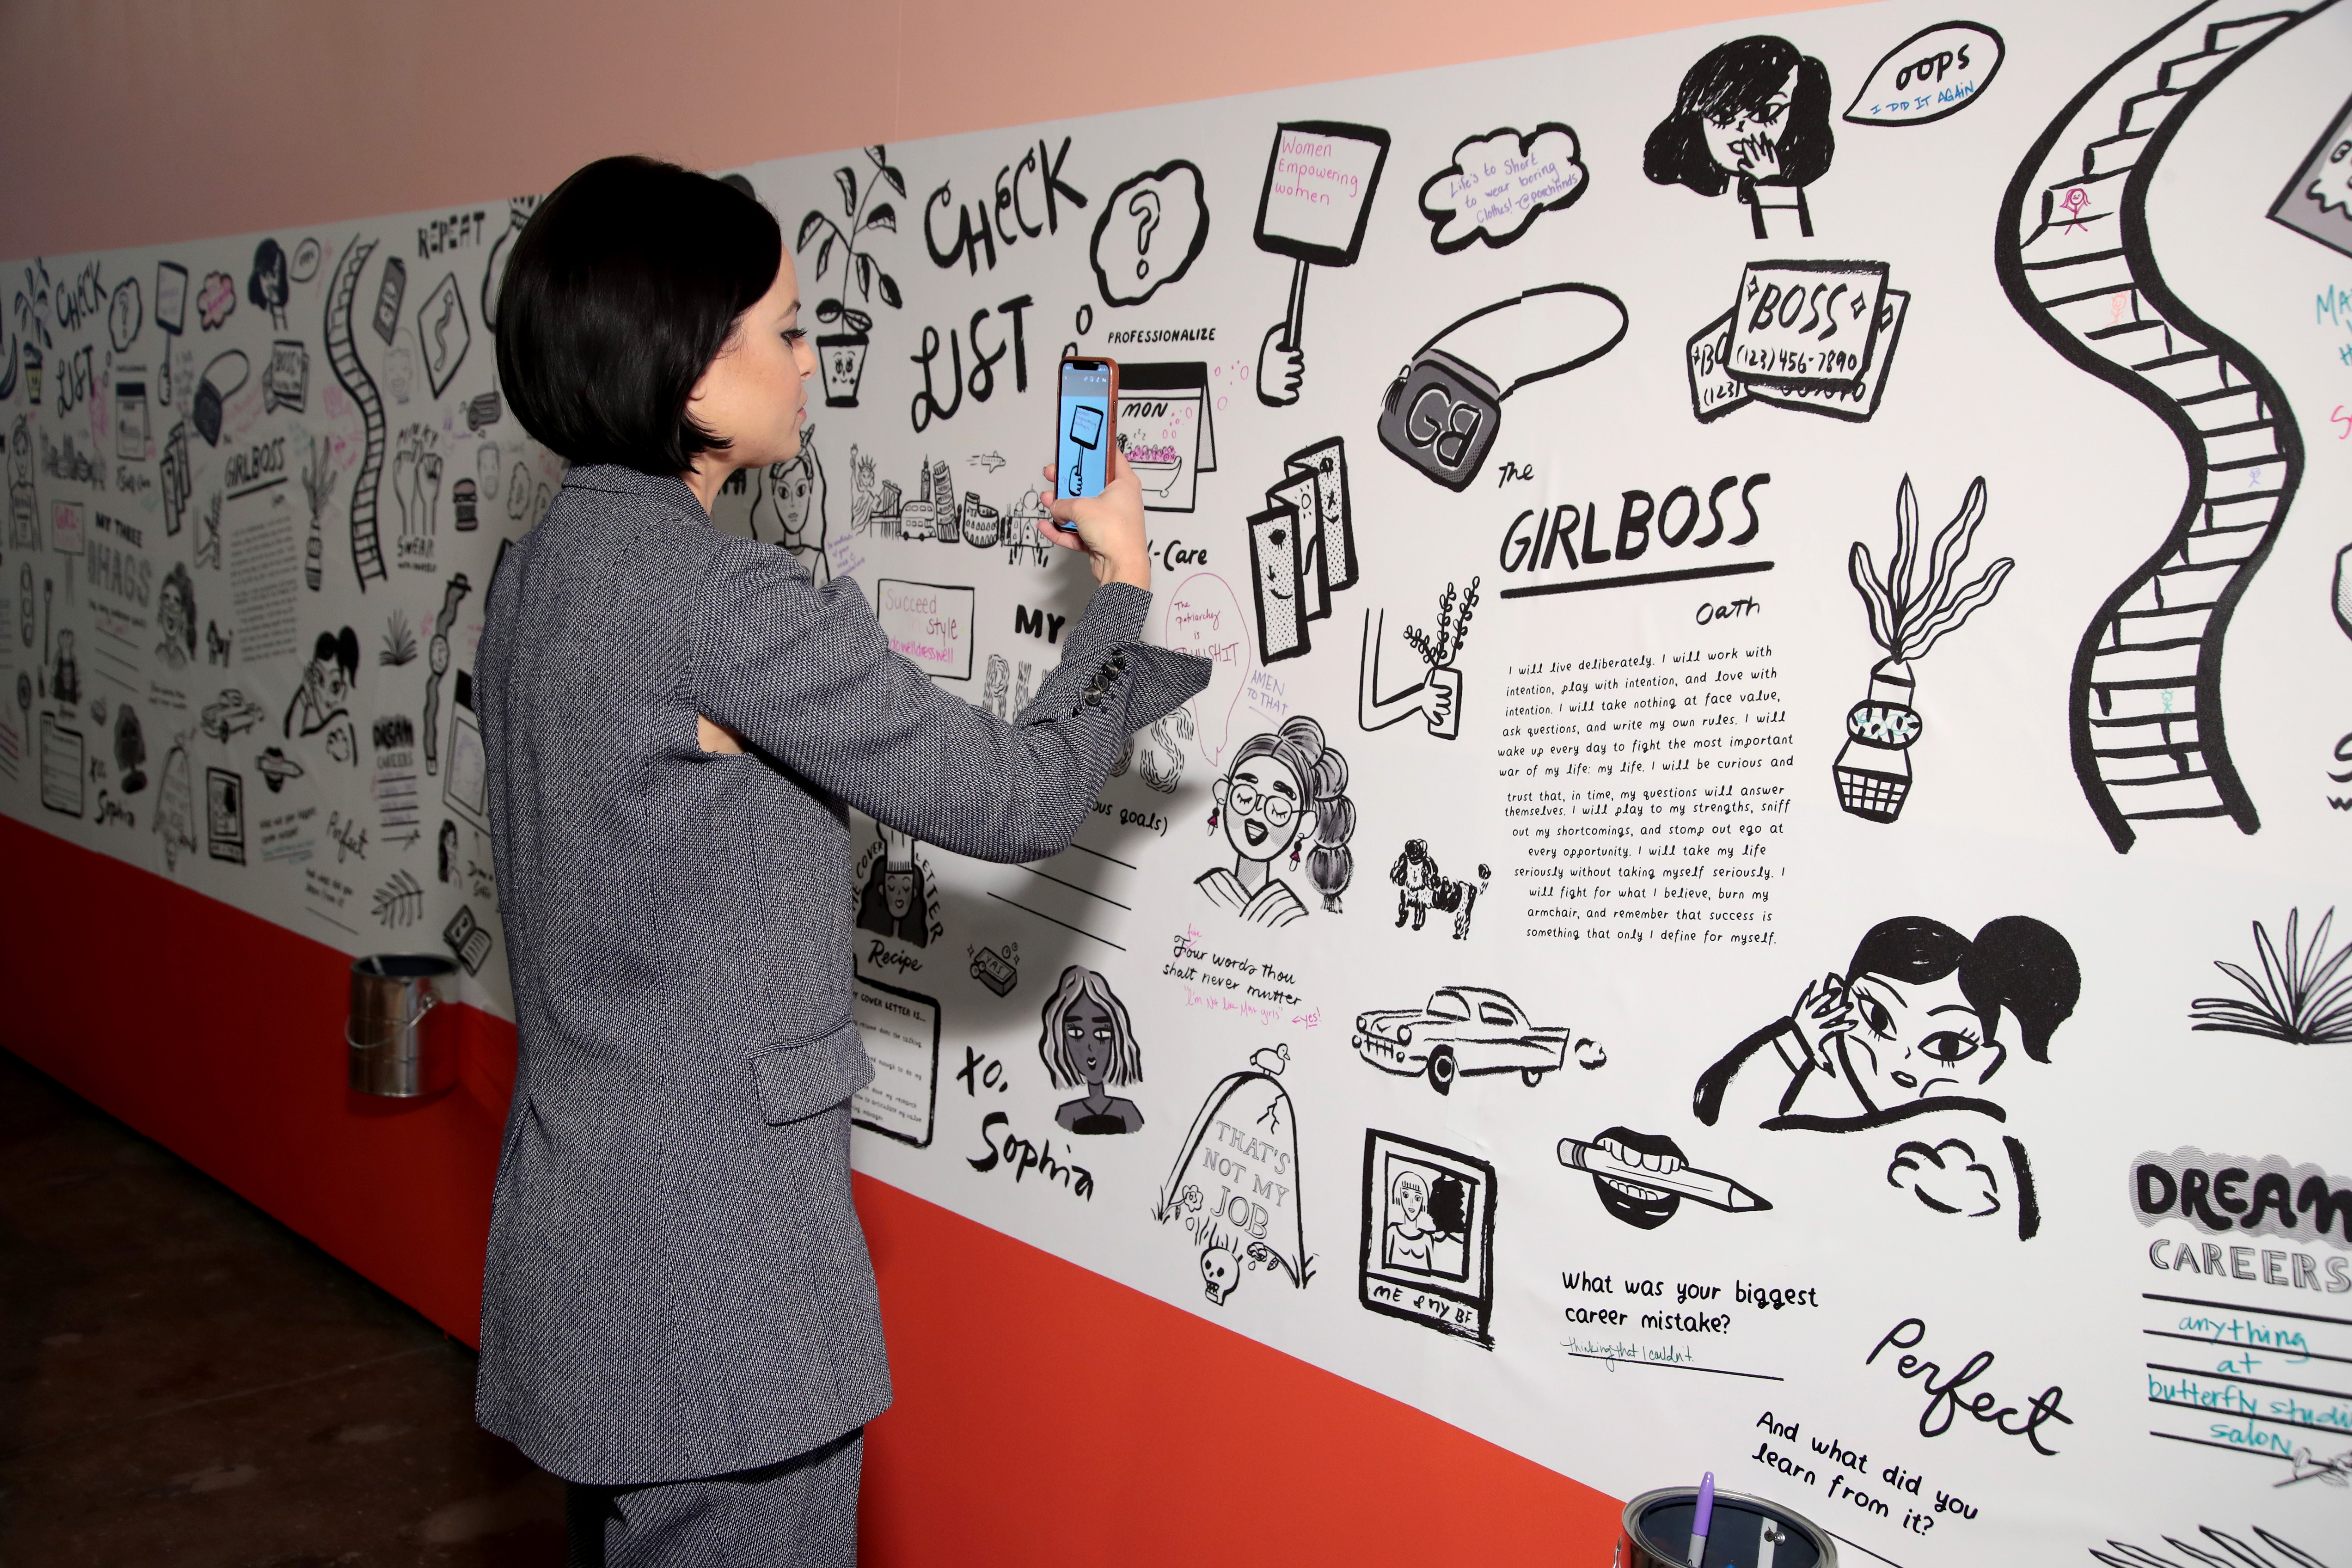 Girlboss founder Sophia Amoruso takes a close-up picture with her phone of a wall mural at a Girlboss rally.